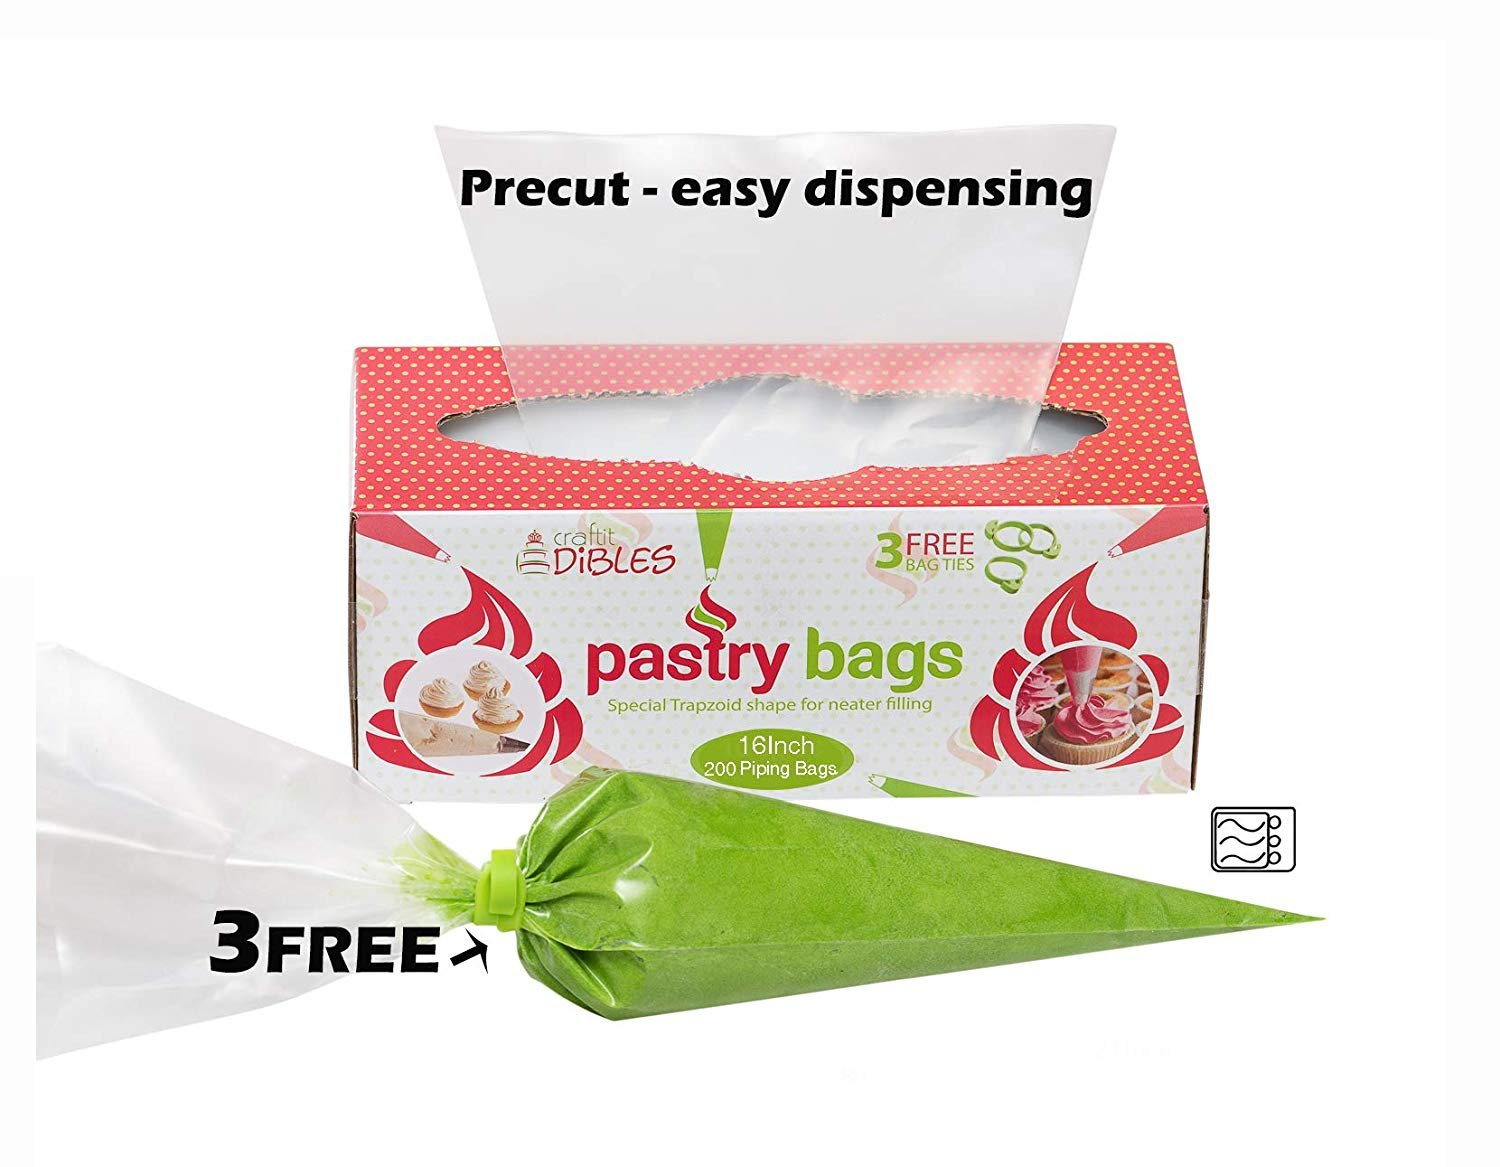 Piping-Bags-Disposable-100-Pack-12-Inch-Cake-Decorating-Pastry-Bag-Set thumbnail 13